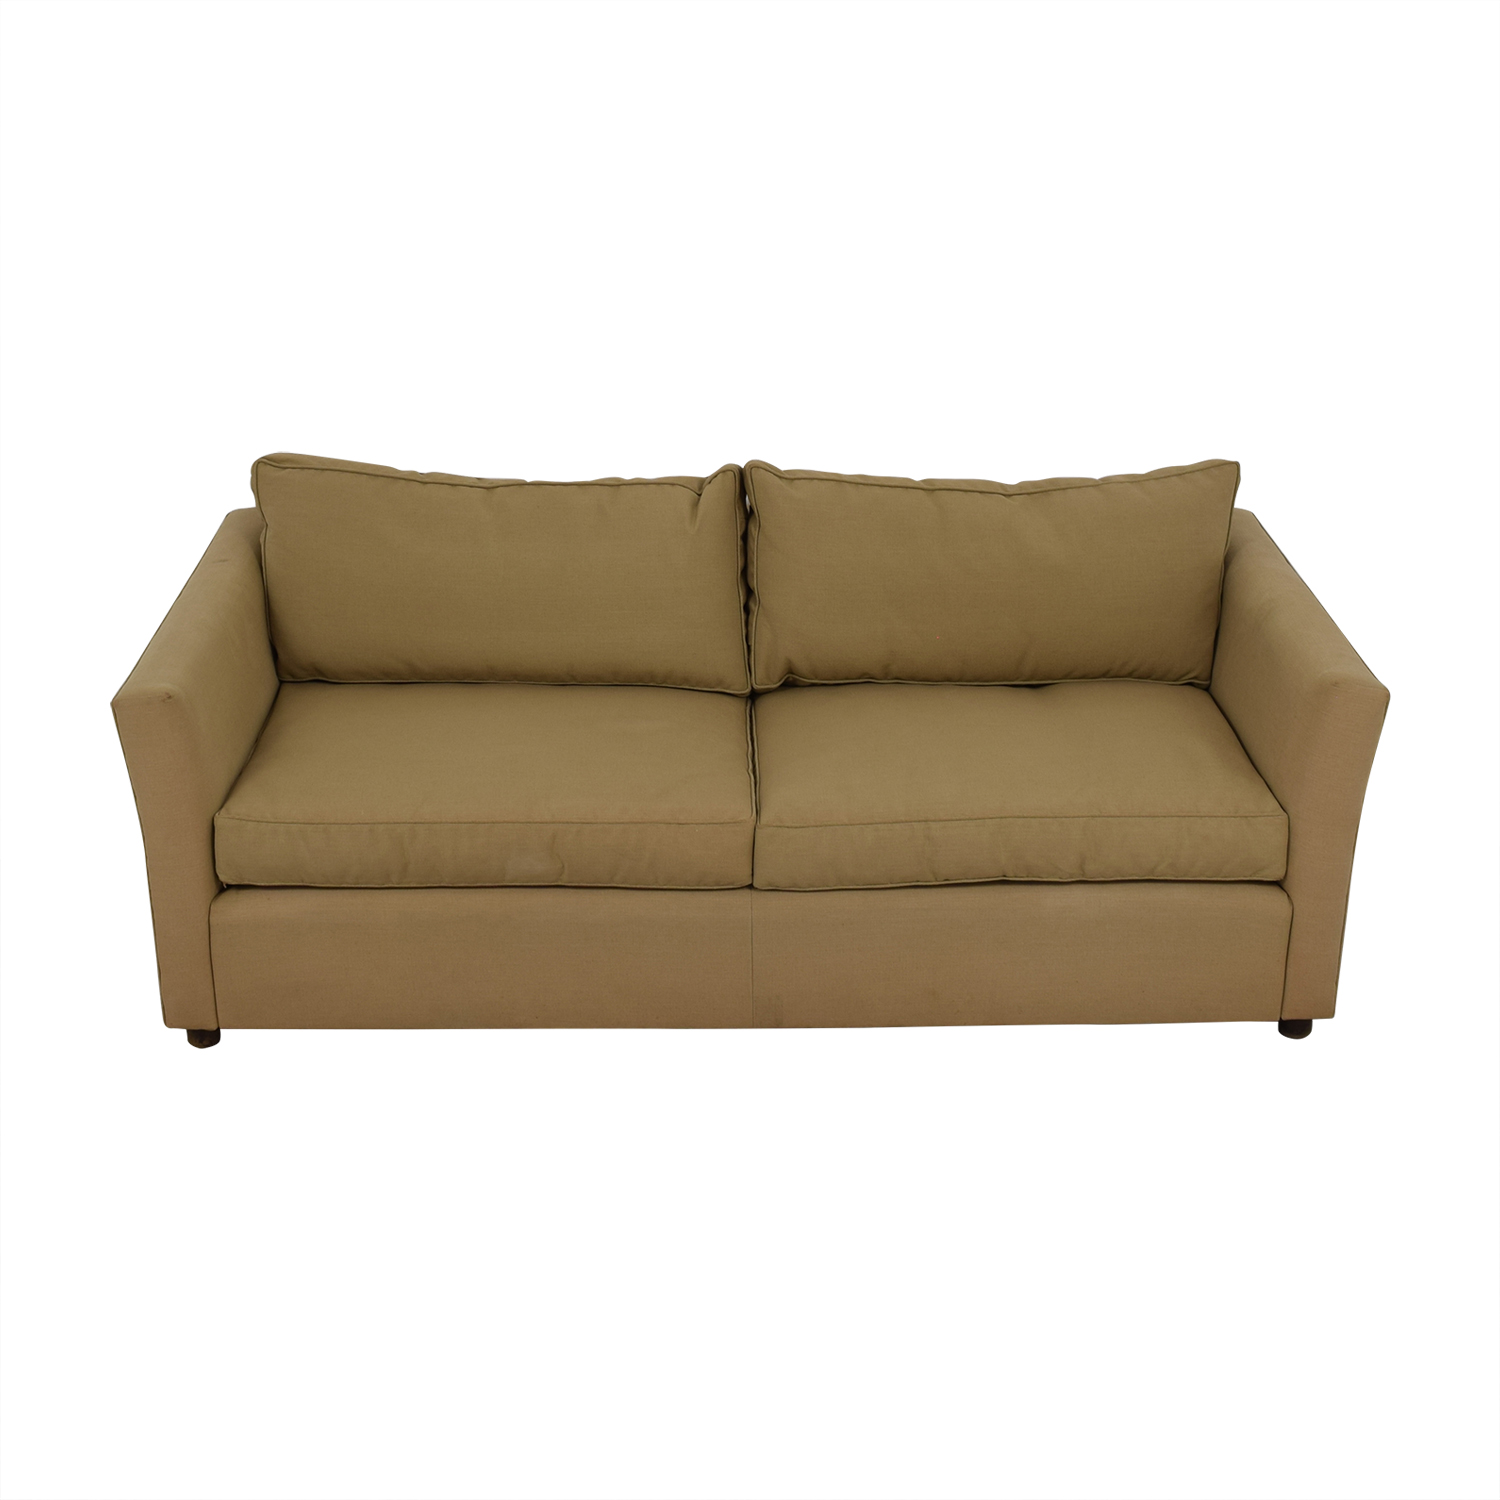 Beige Two-Cushion Sofa discount